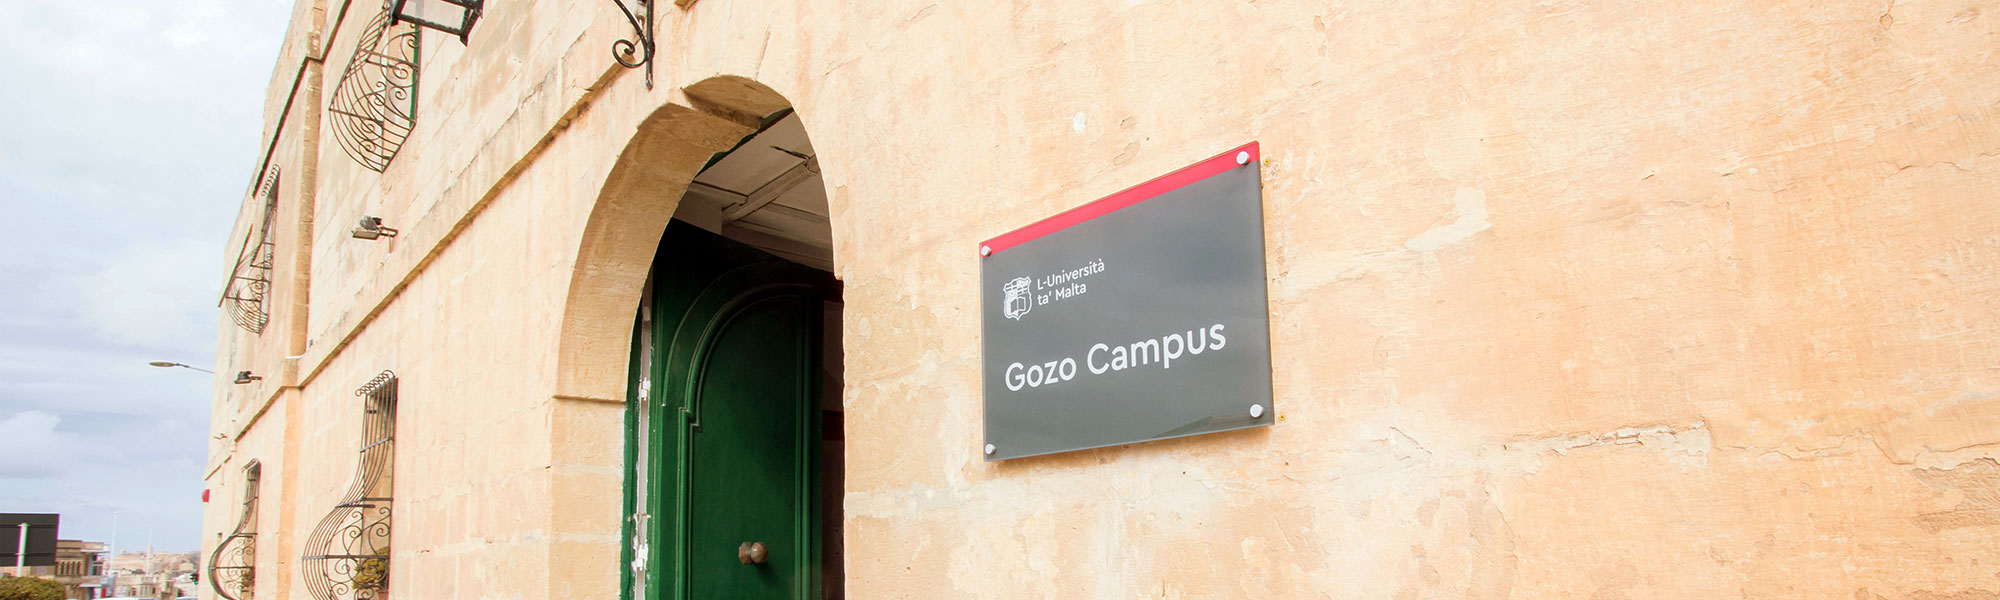 University of Malta Gozo Campus